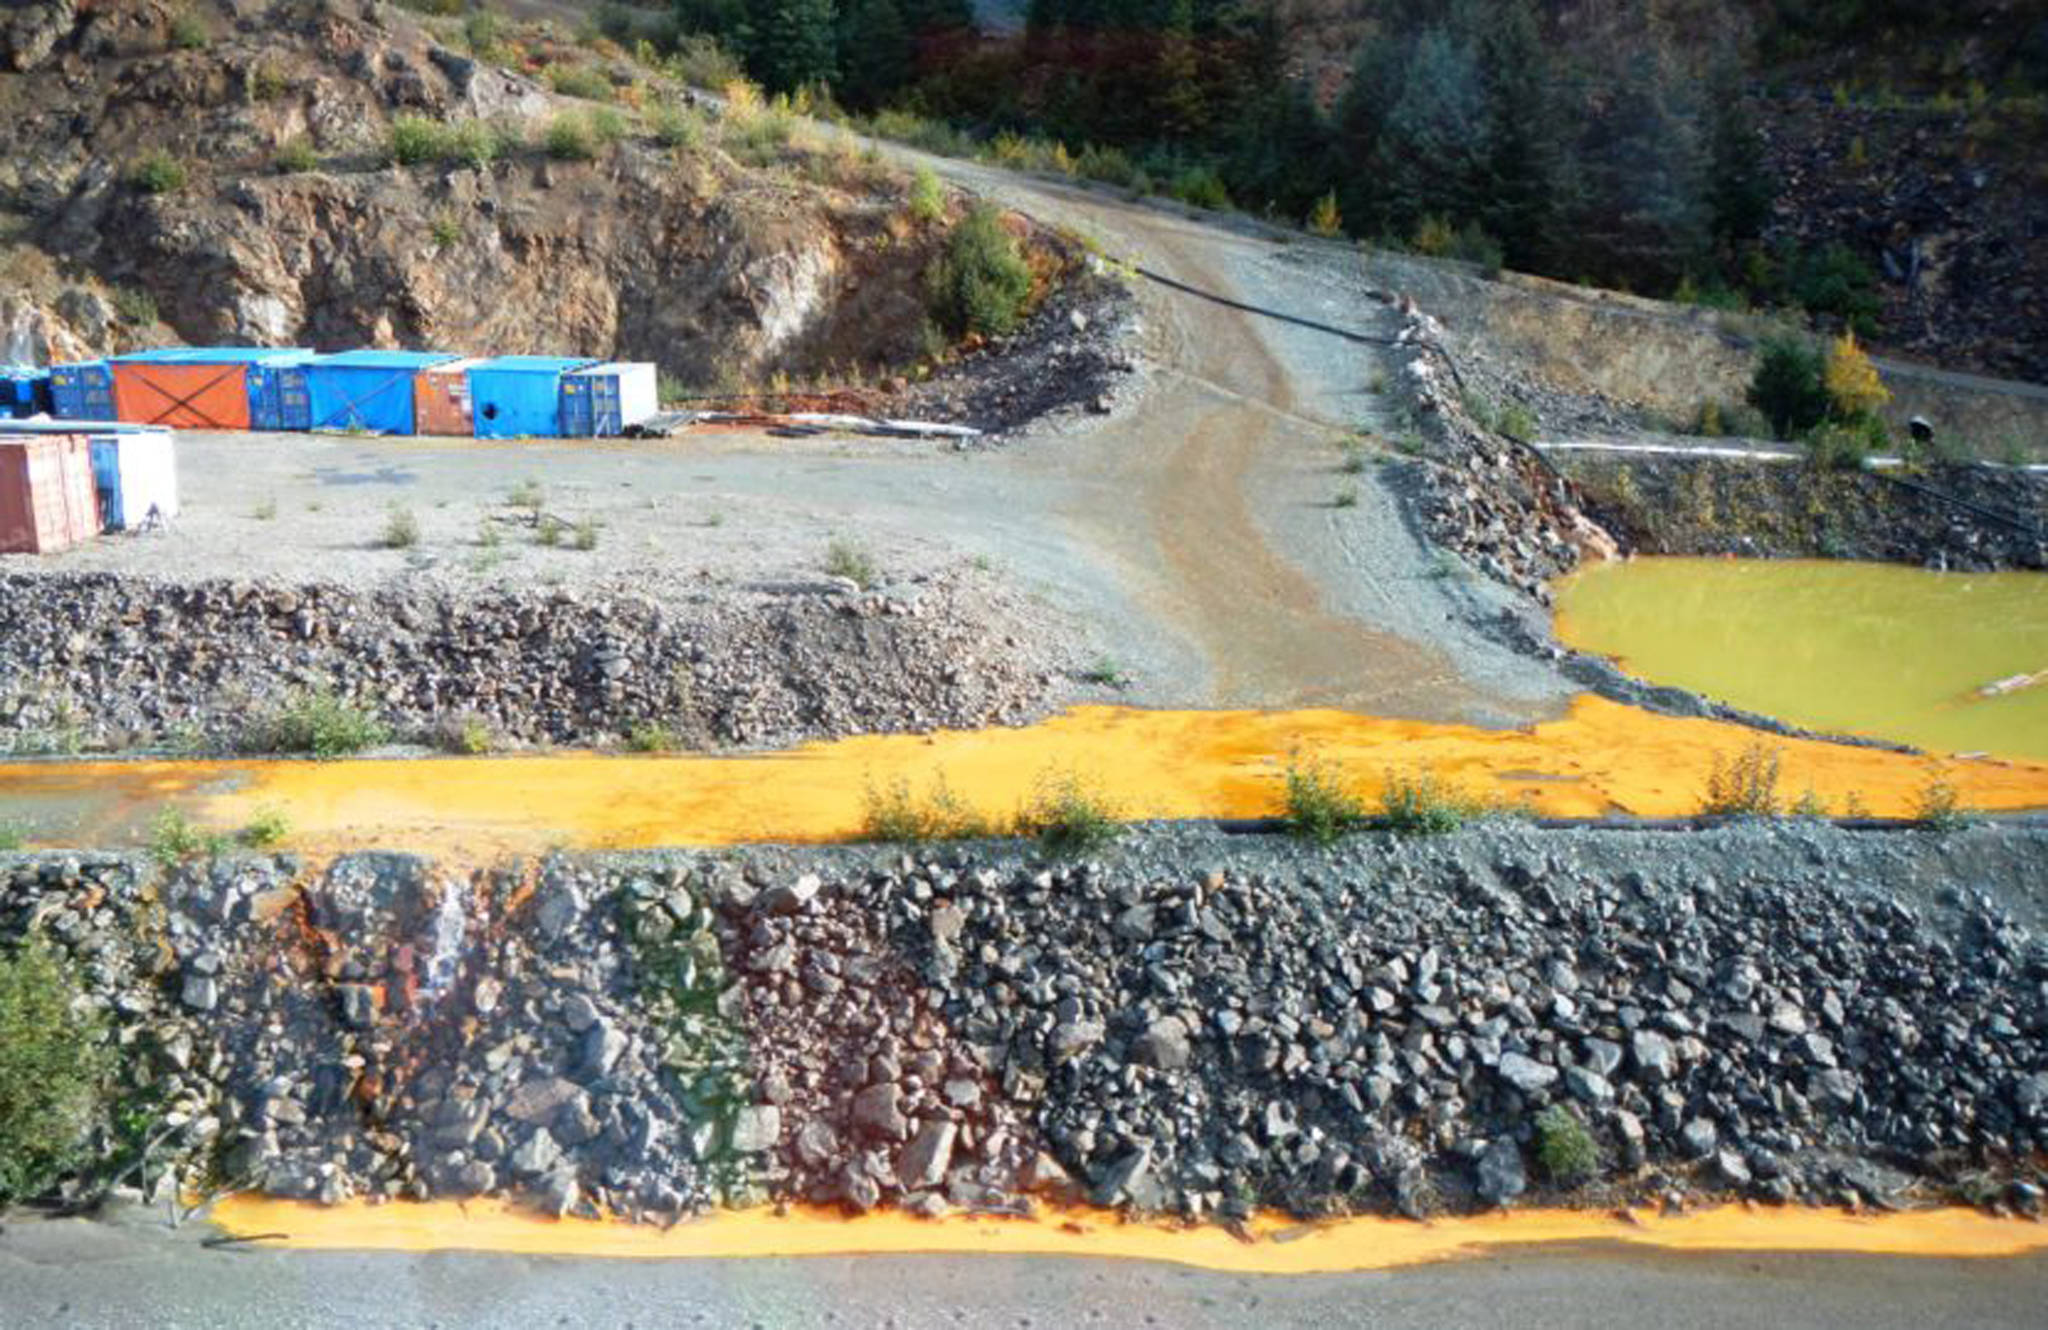 """The Tulsequah Chief Mine is seen on Sept. 26, 2016. The yellow water is Acidic Mine Drainage from shuttered mine adits. It drains into an """"exfiltration pond,"""" pictured, which overflows into the Tulsequah River. (Courtesy Photo)"""